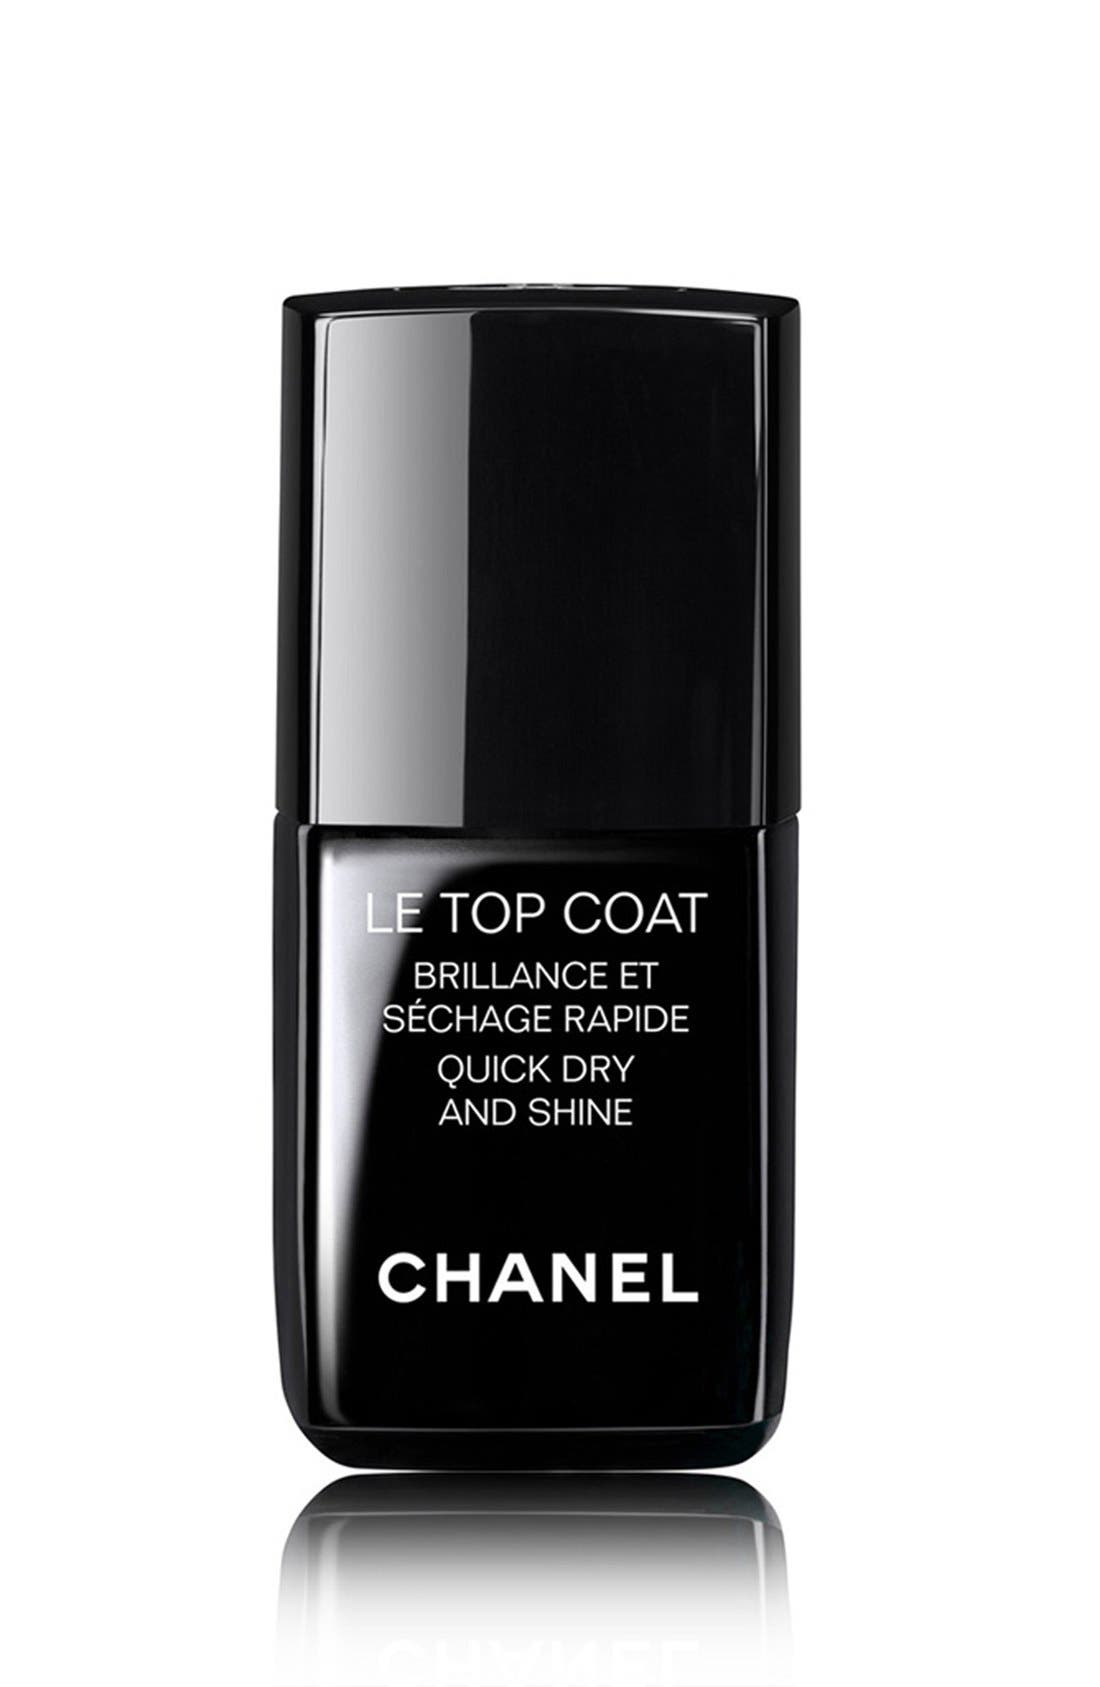 CHANEL LE TOP COAT  Quick Dry and Shine   Nordstrom